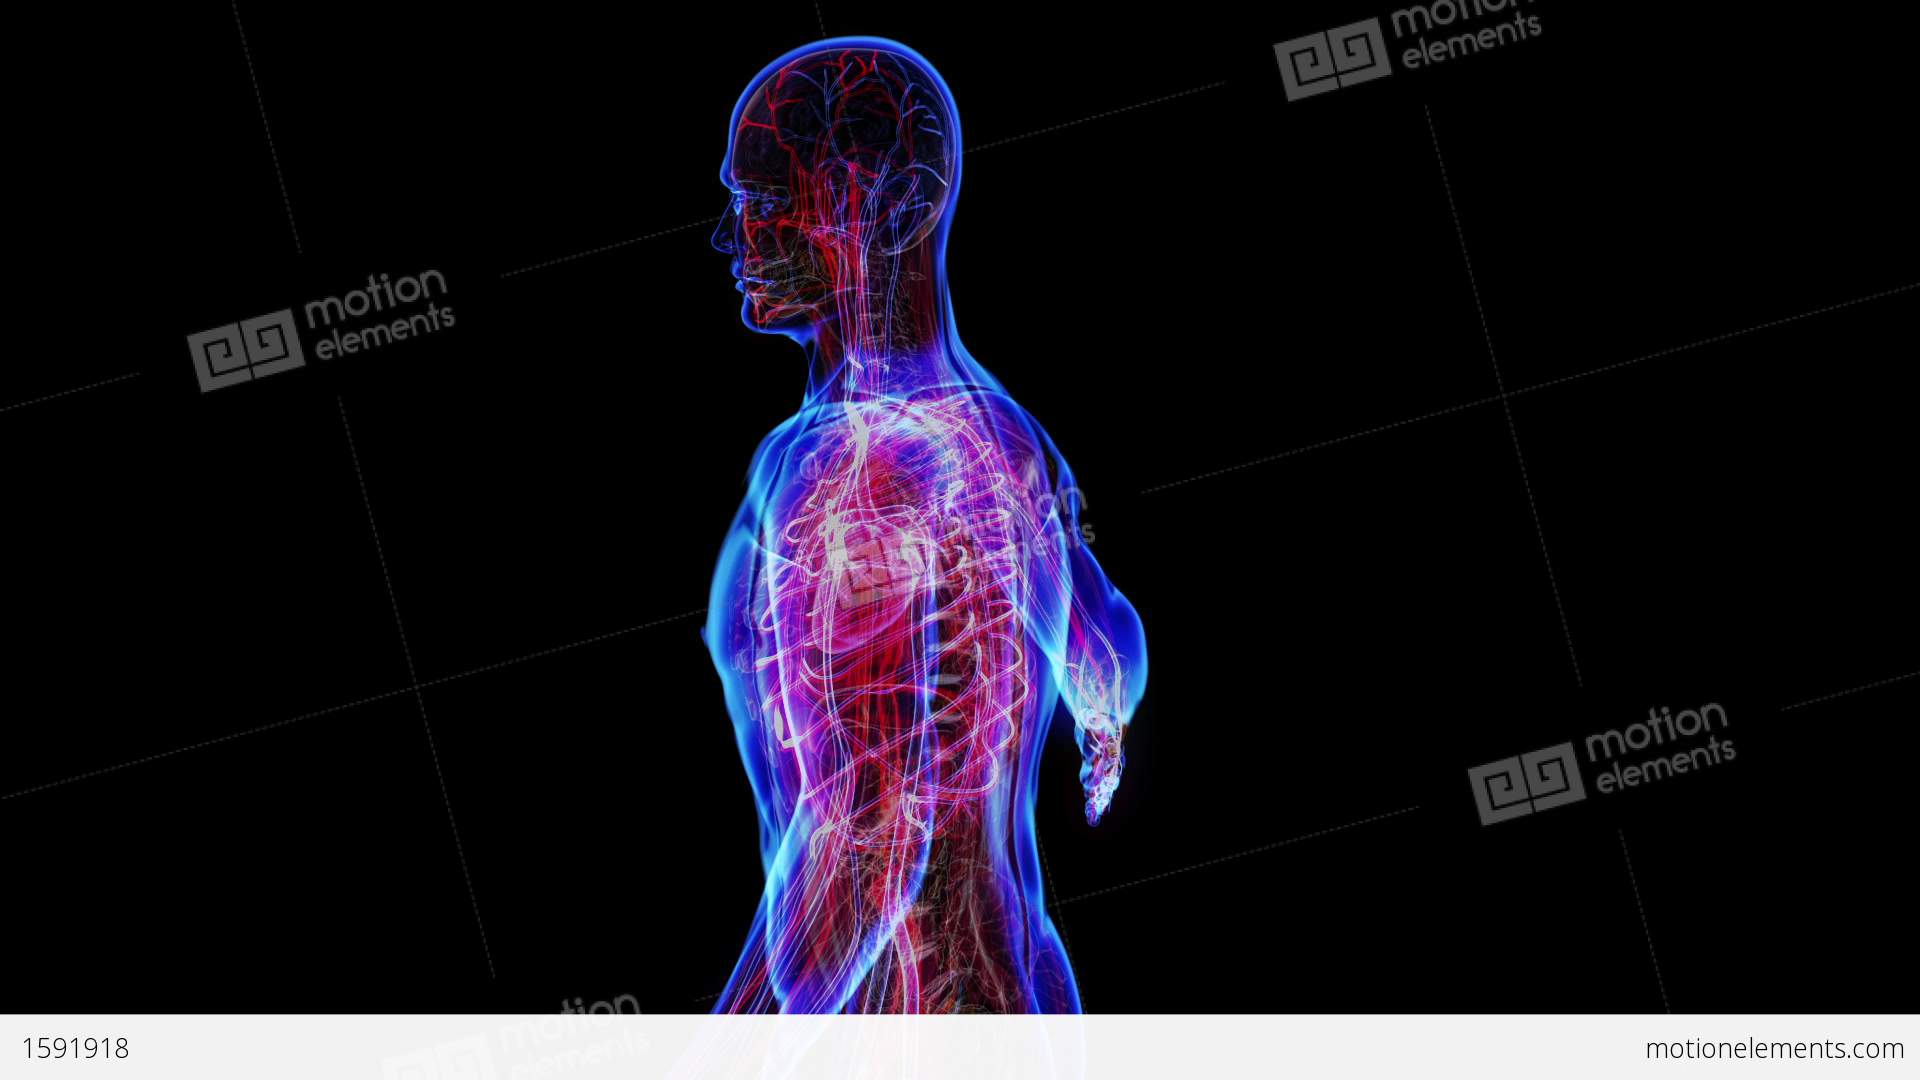 3d Diagram Of Digestive System Human Intestinal Tract Diagram Clipart Of A 3d Labeled Diagram Of 2 further Layers Of The Alimentary Canal Anatomy Digestive System 6 likewise Female Digestive System Diagram Female Digestive System Diagram Anatomy Digestive System Digestive 3 besides 319263061058572109 also Organs Of The Circulatory System Anatomy Organs Of The Cardiovascular System Organs Circulatory System. on human circulatory system video